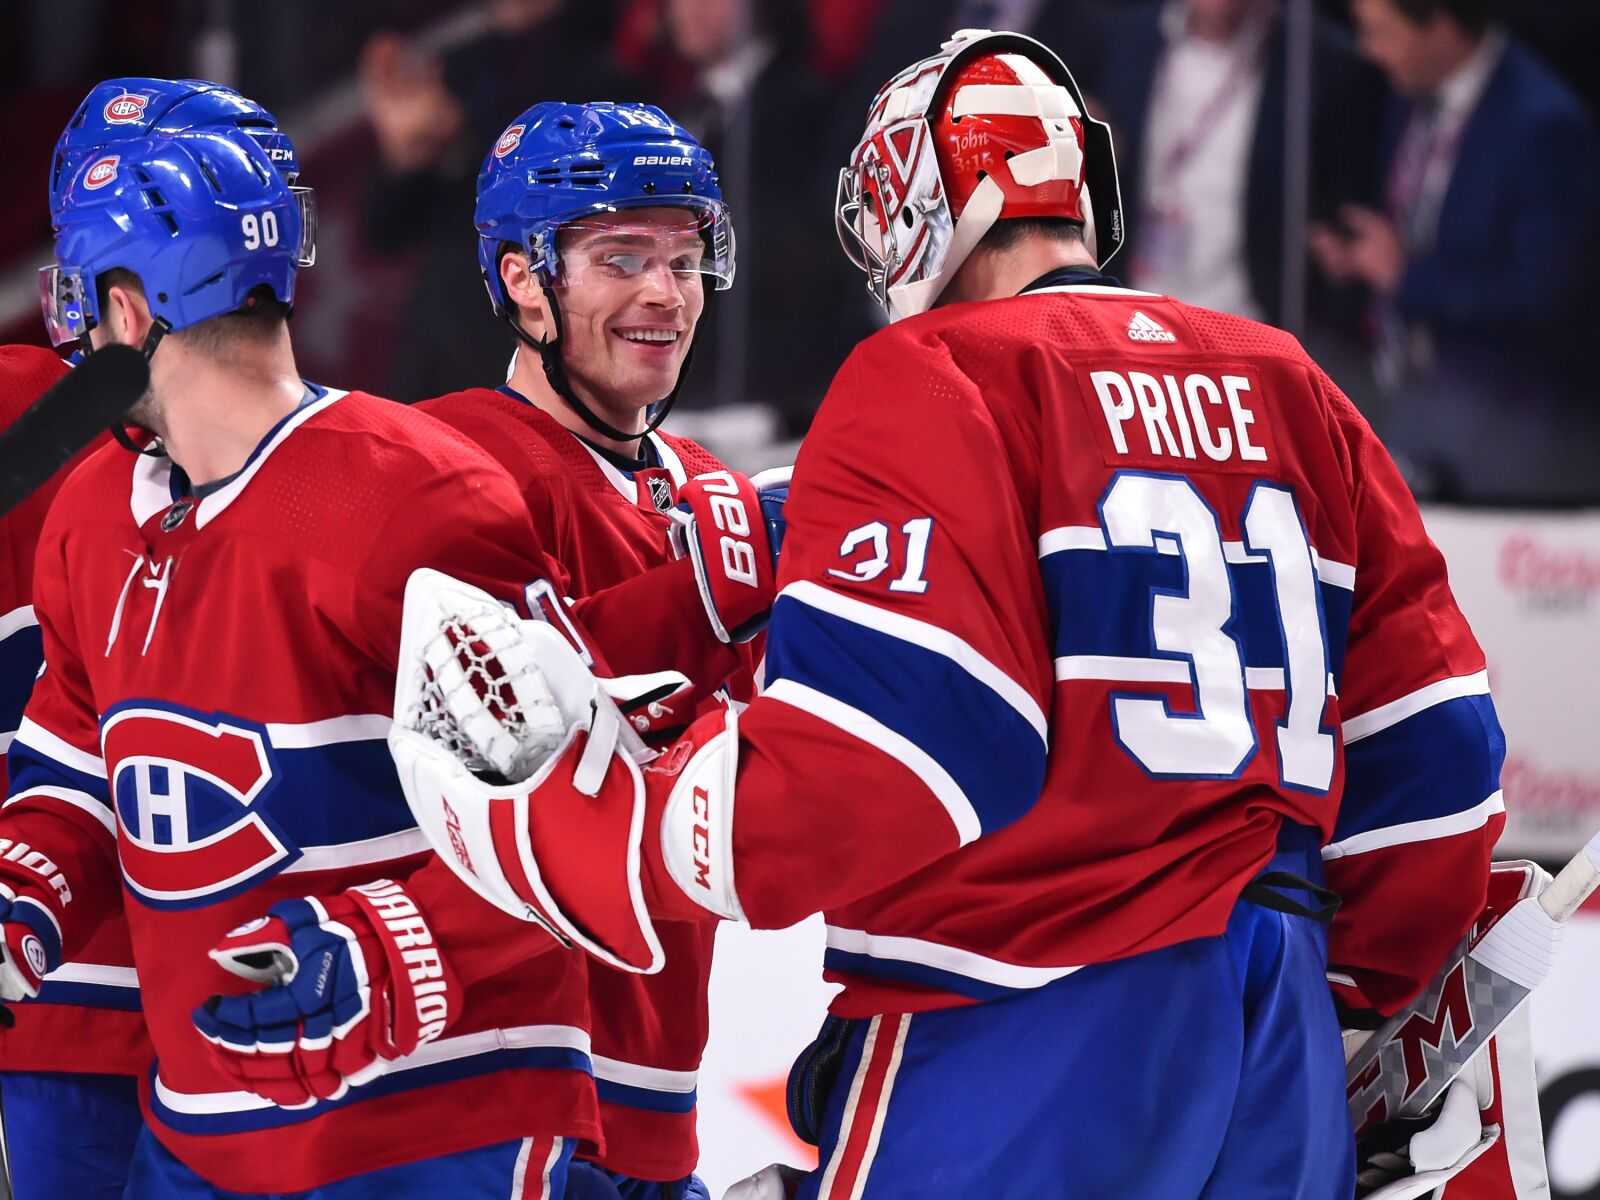 794a5de401d Montreal Canadiens: Are they this season's Vegas Golden Knights?